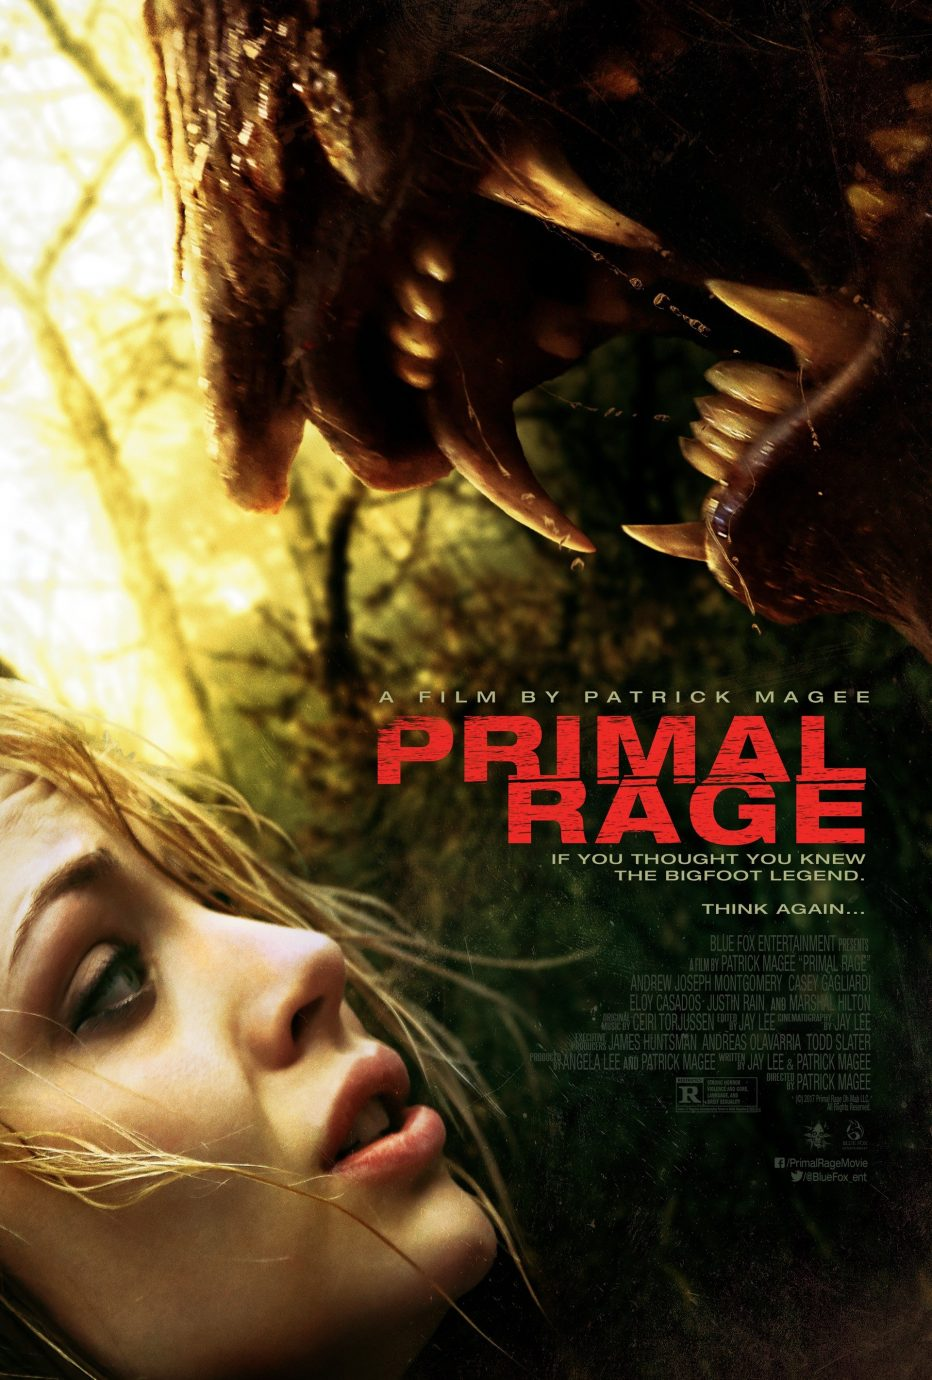 Primal Rage For One Night Only!